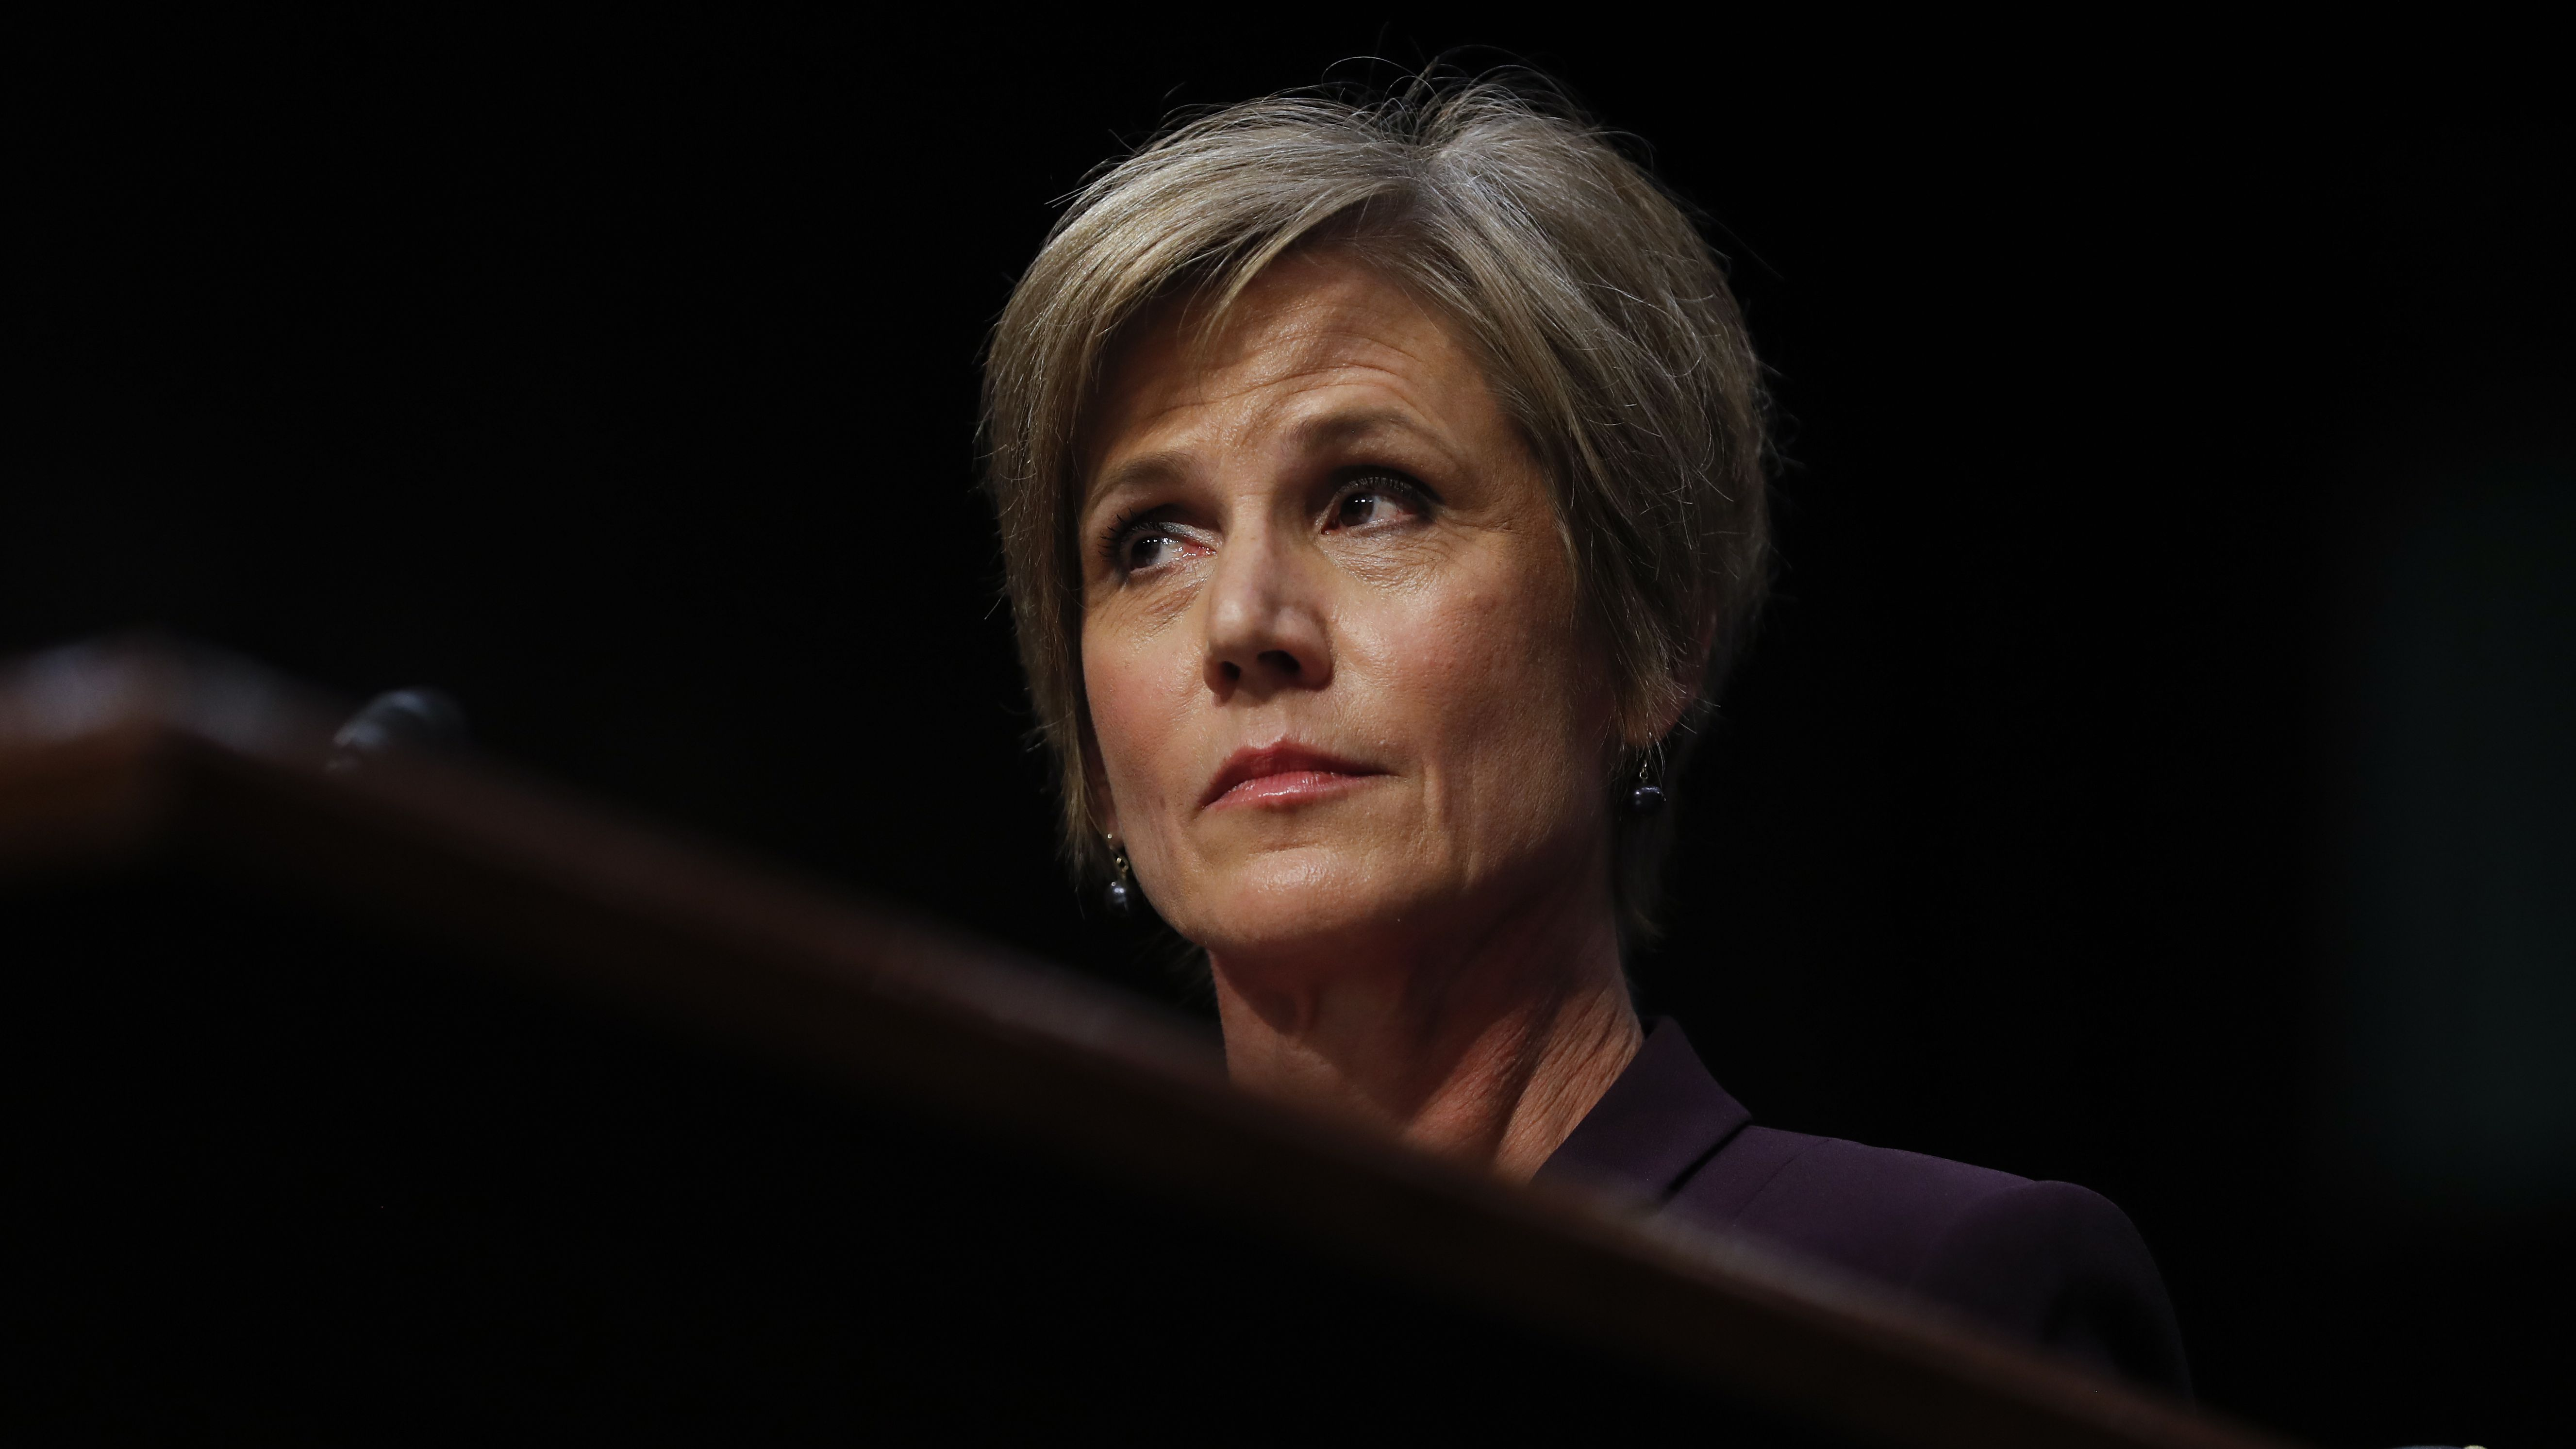 """Former acting Attorney General Sally Yates listens on Capitol Hill in Washington, Monday, May 8, 2017, while testifying before the Senate Judiciary subcommittee on Crime and Terrorism hearing: """"Russian Interference in the 2016 United States Election."""" (AP Photo/Carolyn Kaster)"""